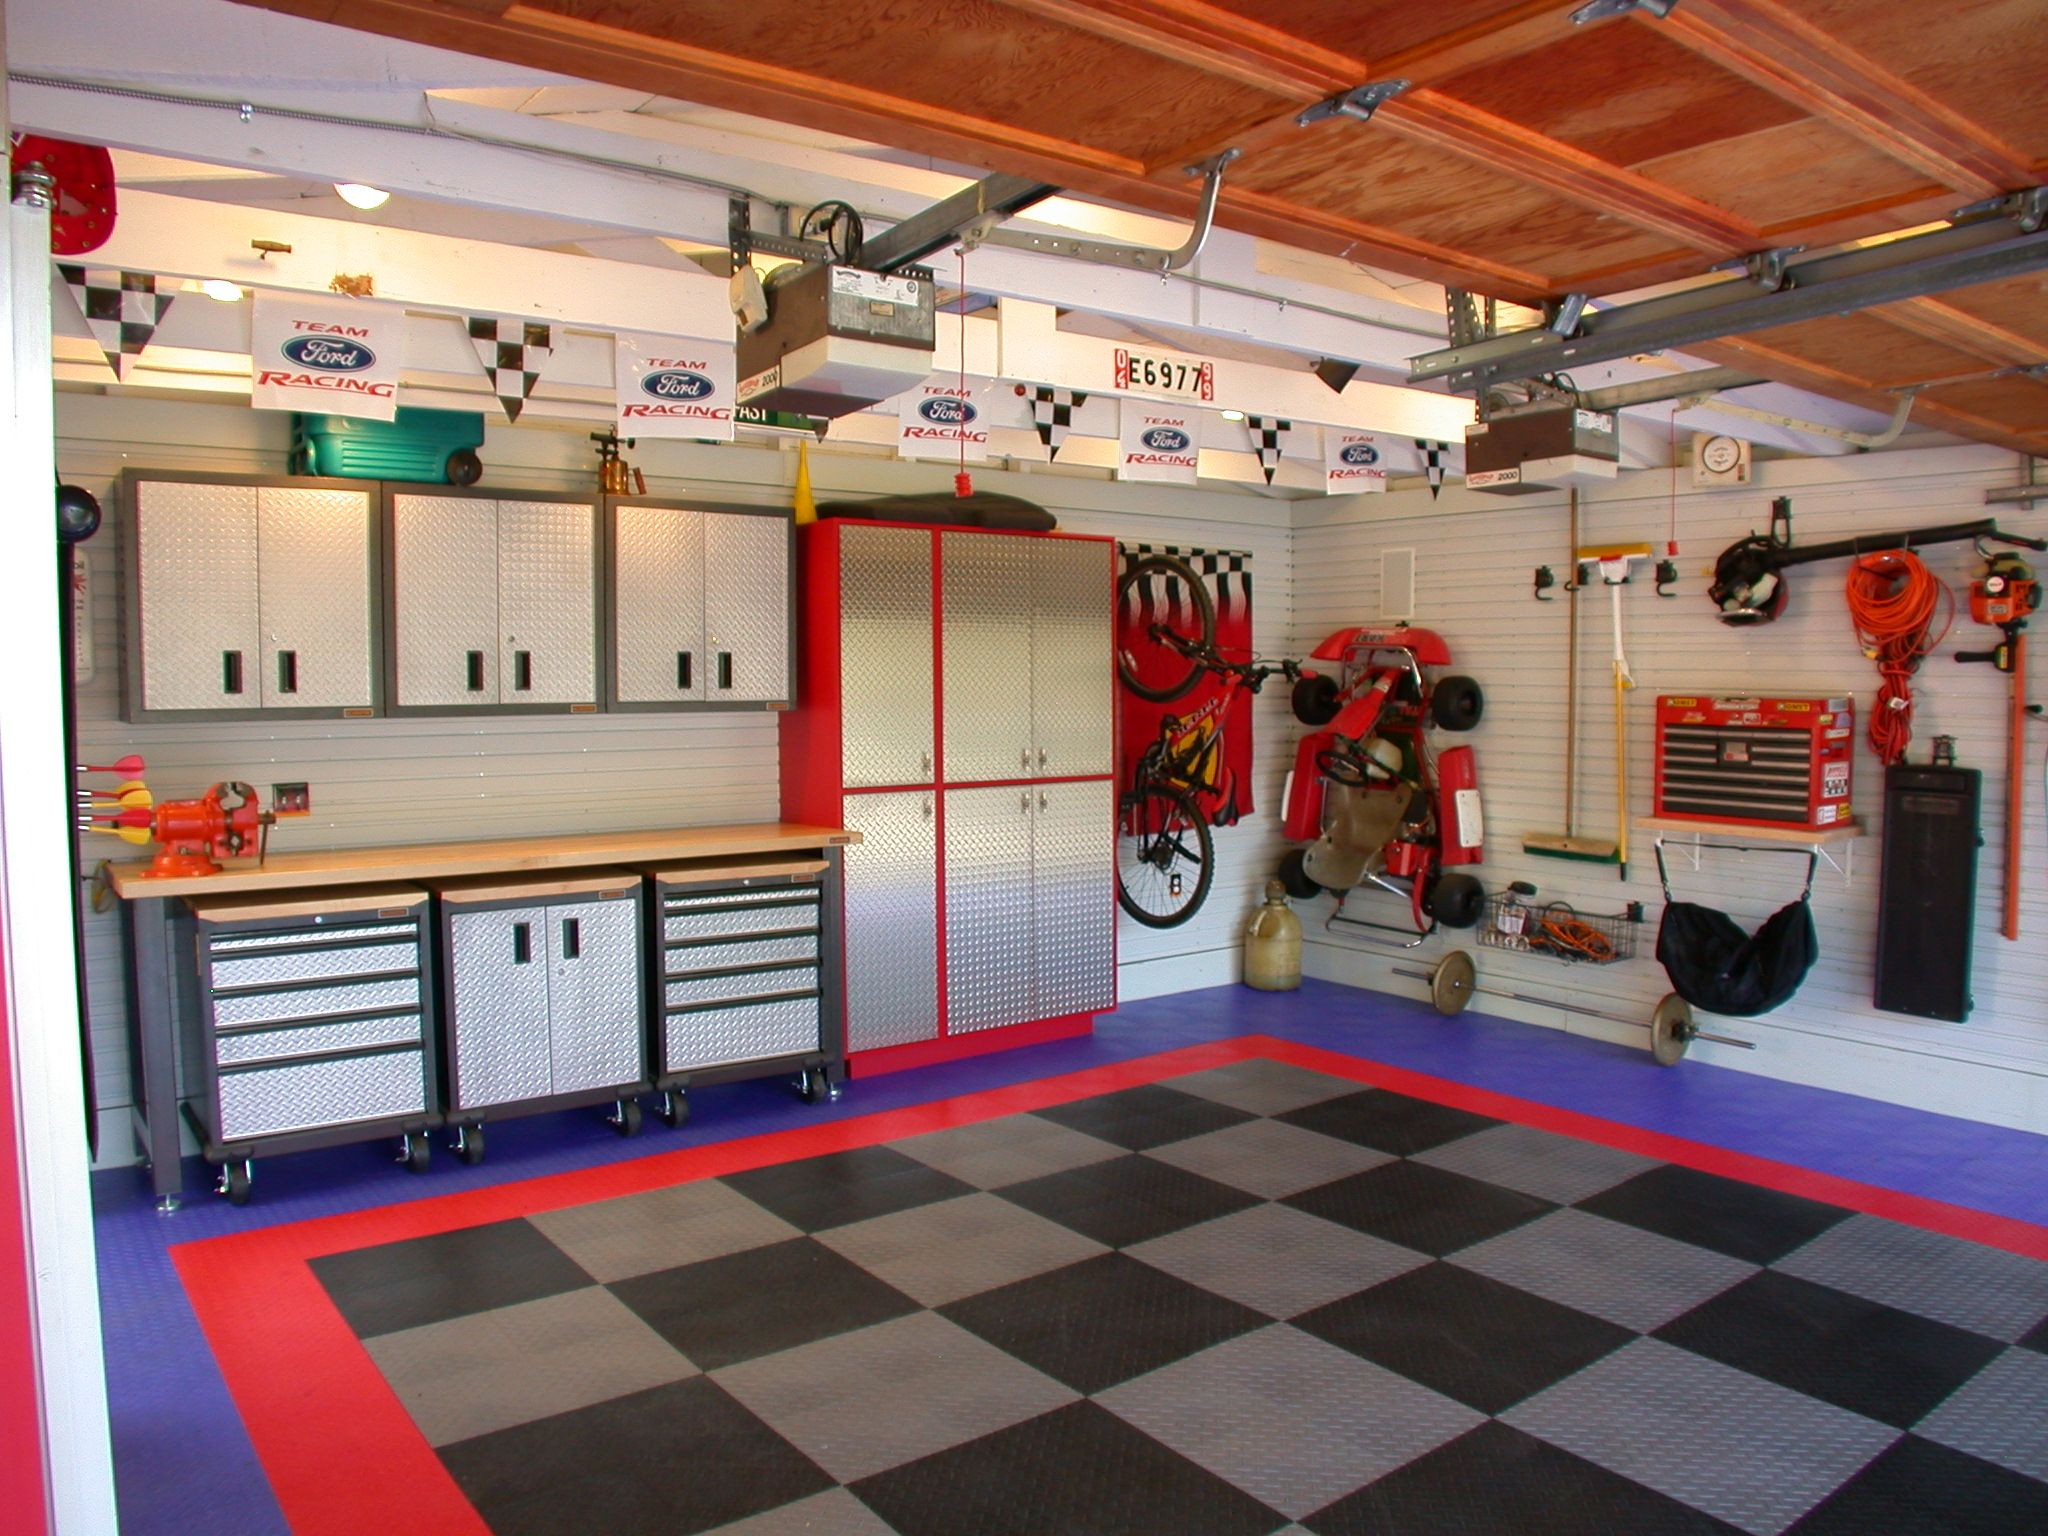 Cool garage by custom kitchens dream garage ideas for Cool garage designs